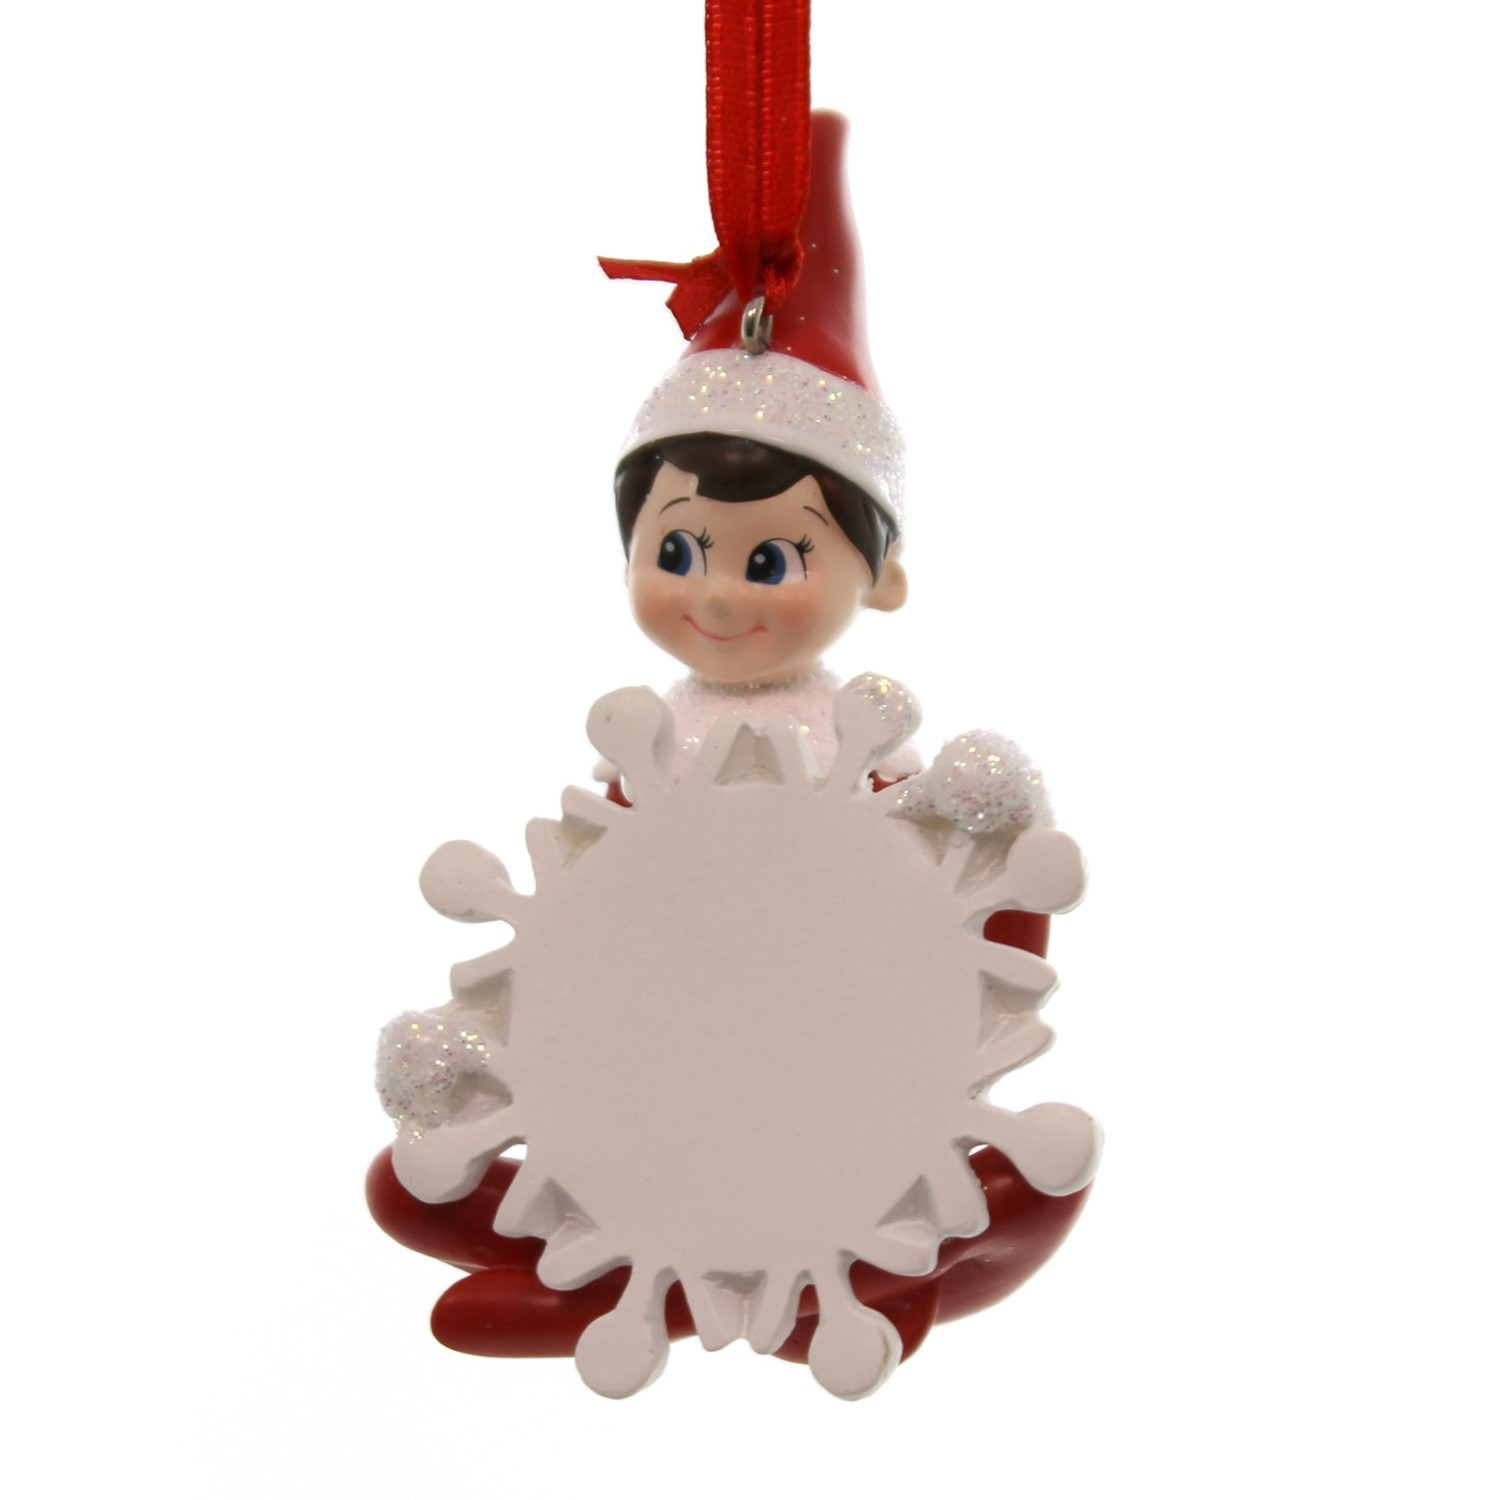 Elf Christmas ornaments Best Of Holiday ornaments Elf On the Shelf Polyresin Resin Of Top 47 Photos Elf Christmas ornaments